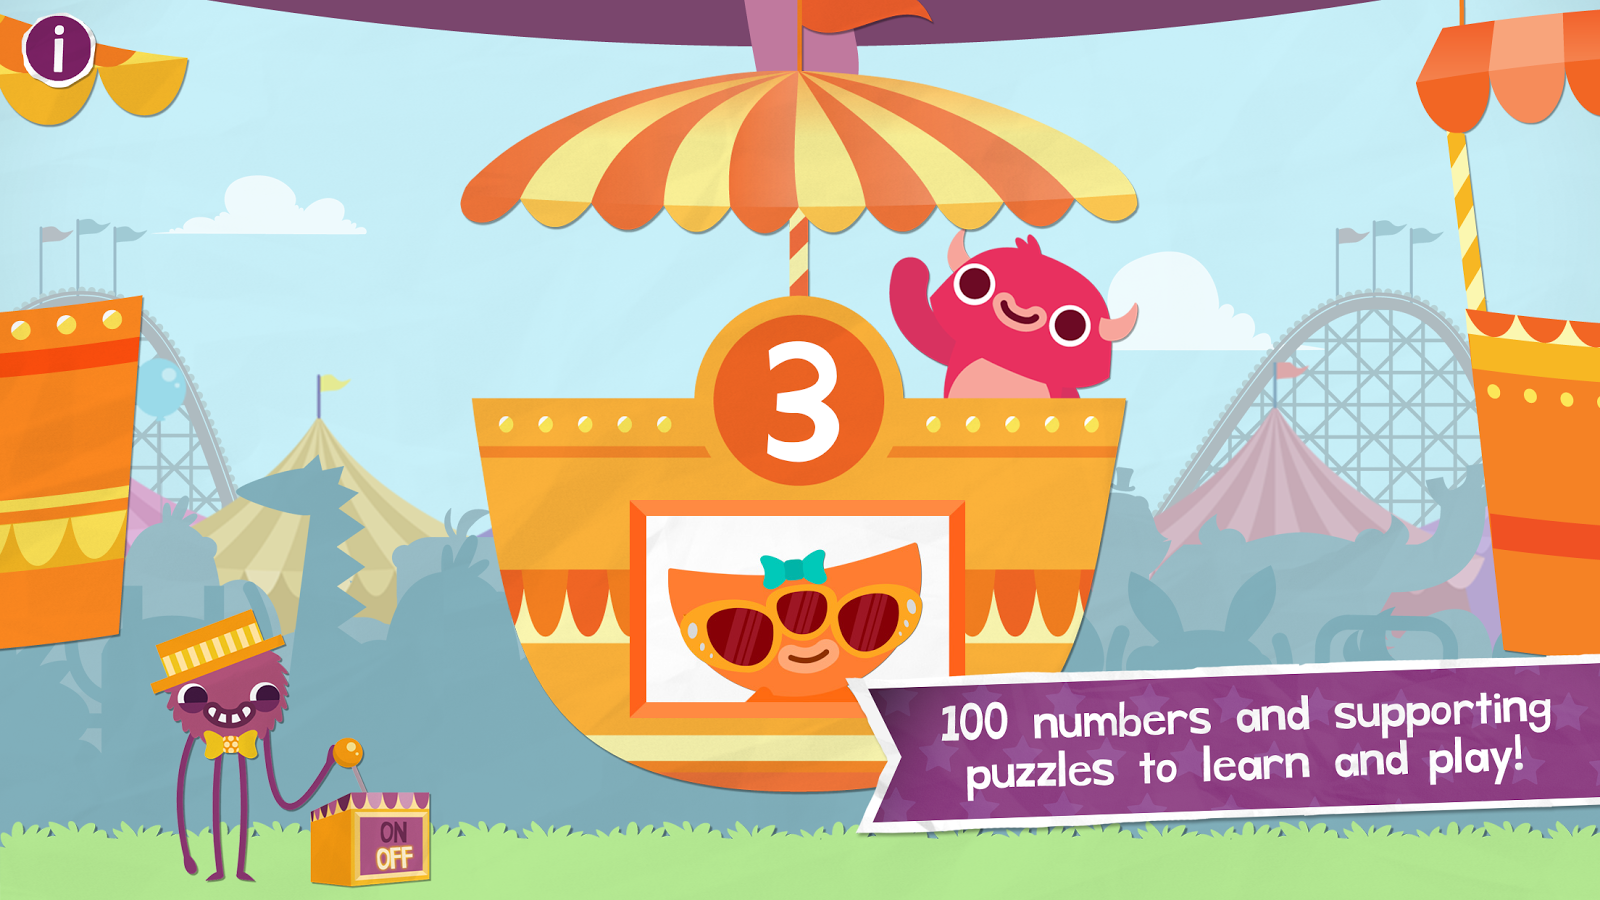 Endless Numbers - Android Apps on Google Play image library download